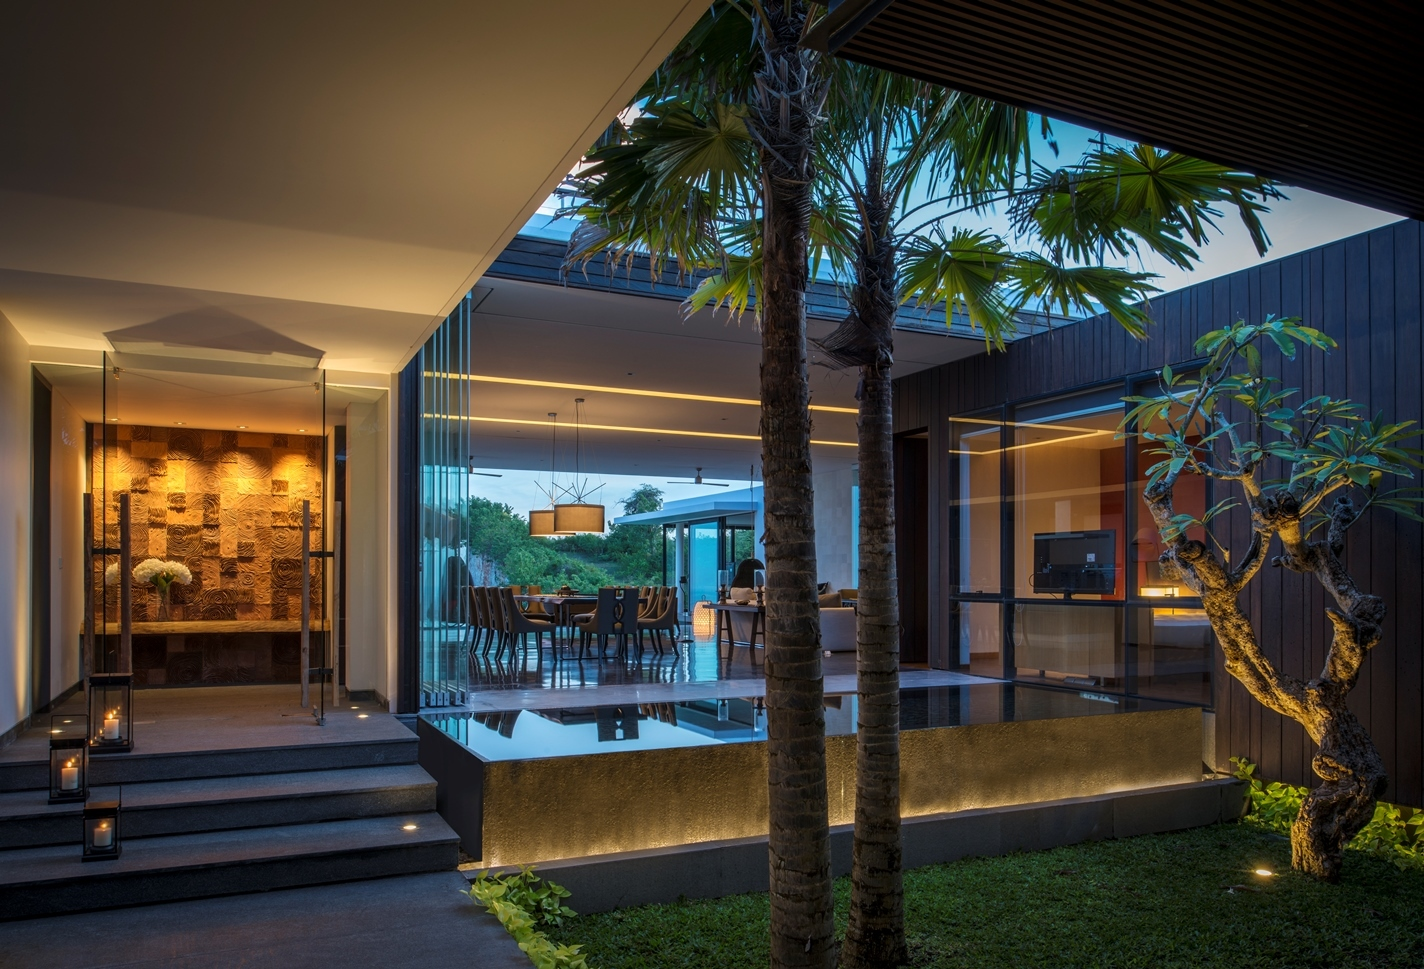 Modern Tropical Home with Interior Courtyard  Bali Oceanfront Villa